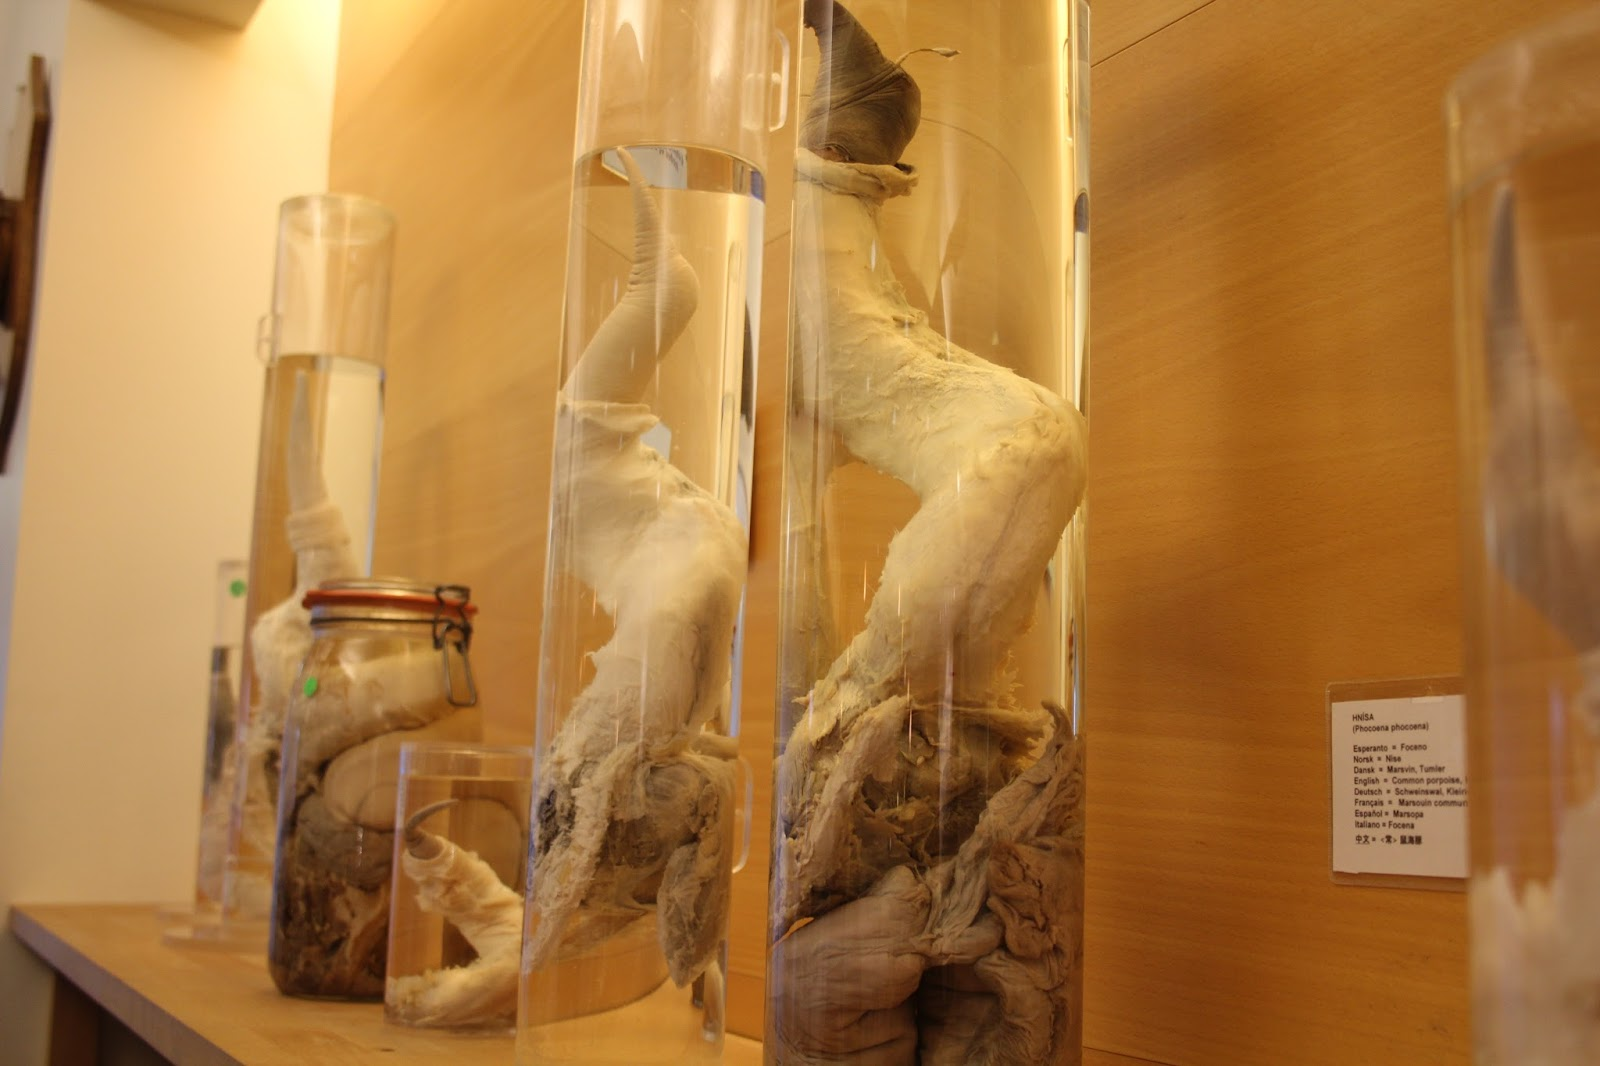 Jarred animal penises at the Icelandic Phallological Museum